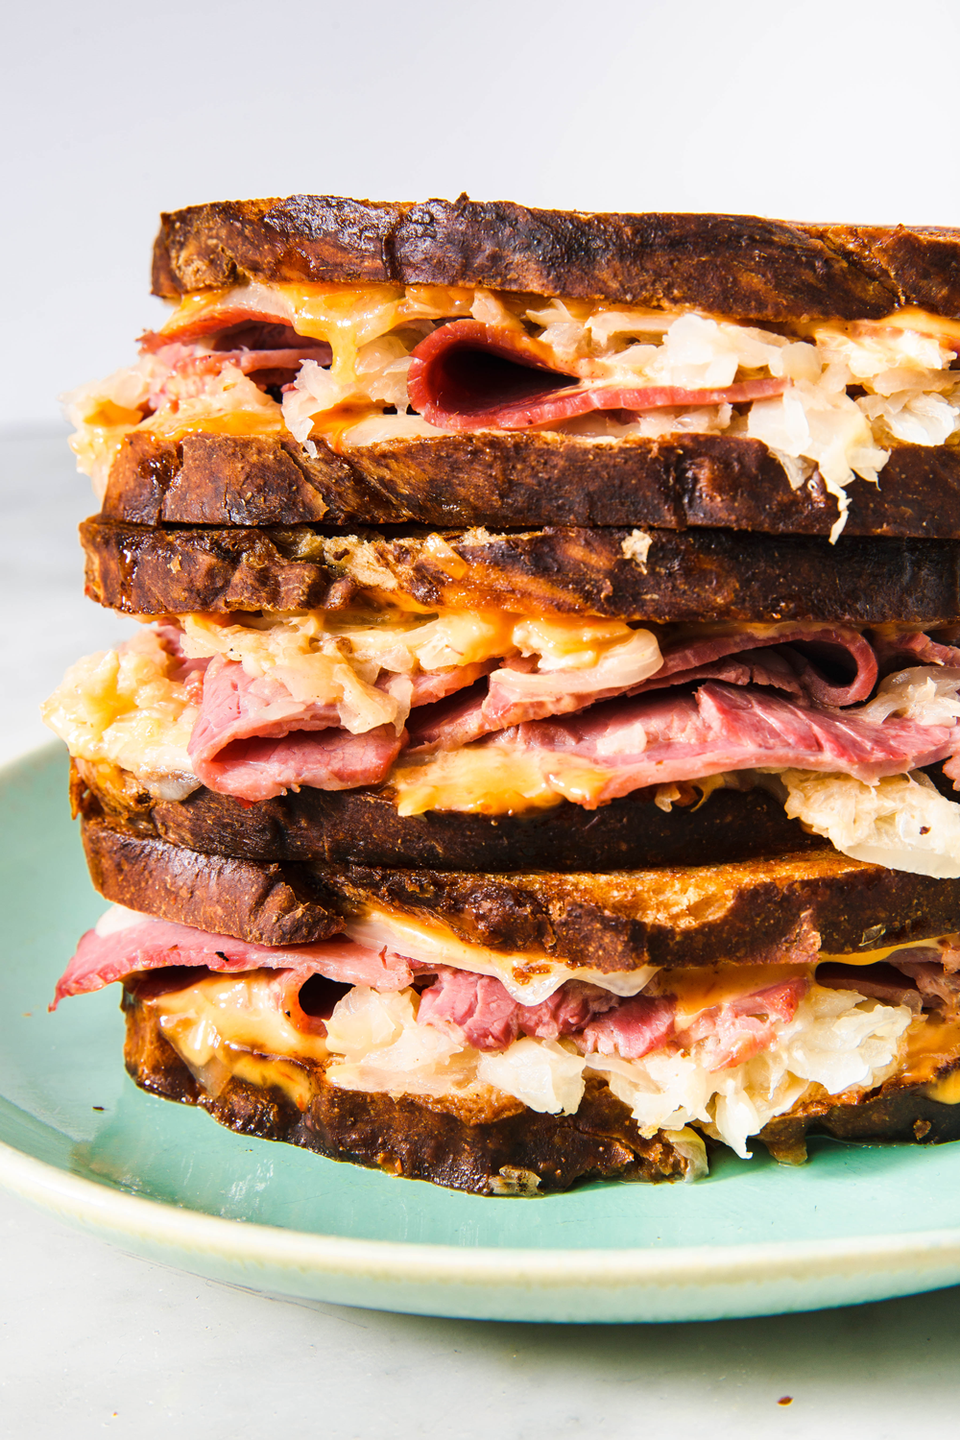 "<p>Corned beef for dinner, reuben for the next day's lunch. </p><p>Get the recipe from <a href=""https://www.delish.com/cooking/recipe-ideas/a23872214/classic-reuben-sandwich-recipe/"" rel=""nofollow noopener"" target=""_blank"" data-ylk=""slk:Delish"" class=""link rapid-noclick-resp"">Delish</a>.</p>"